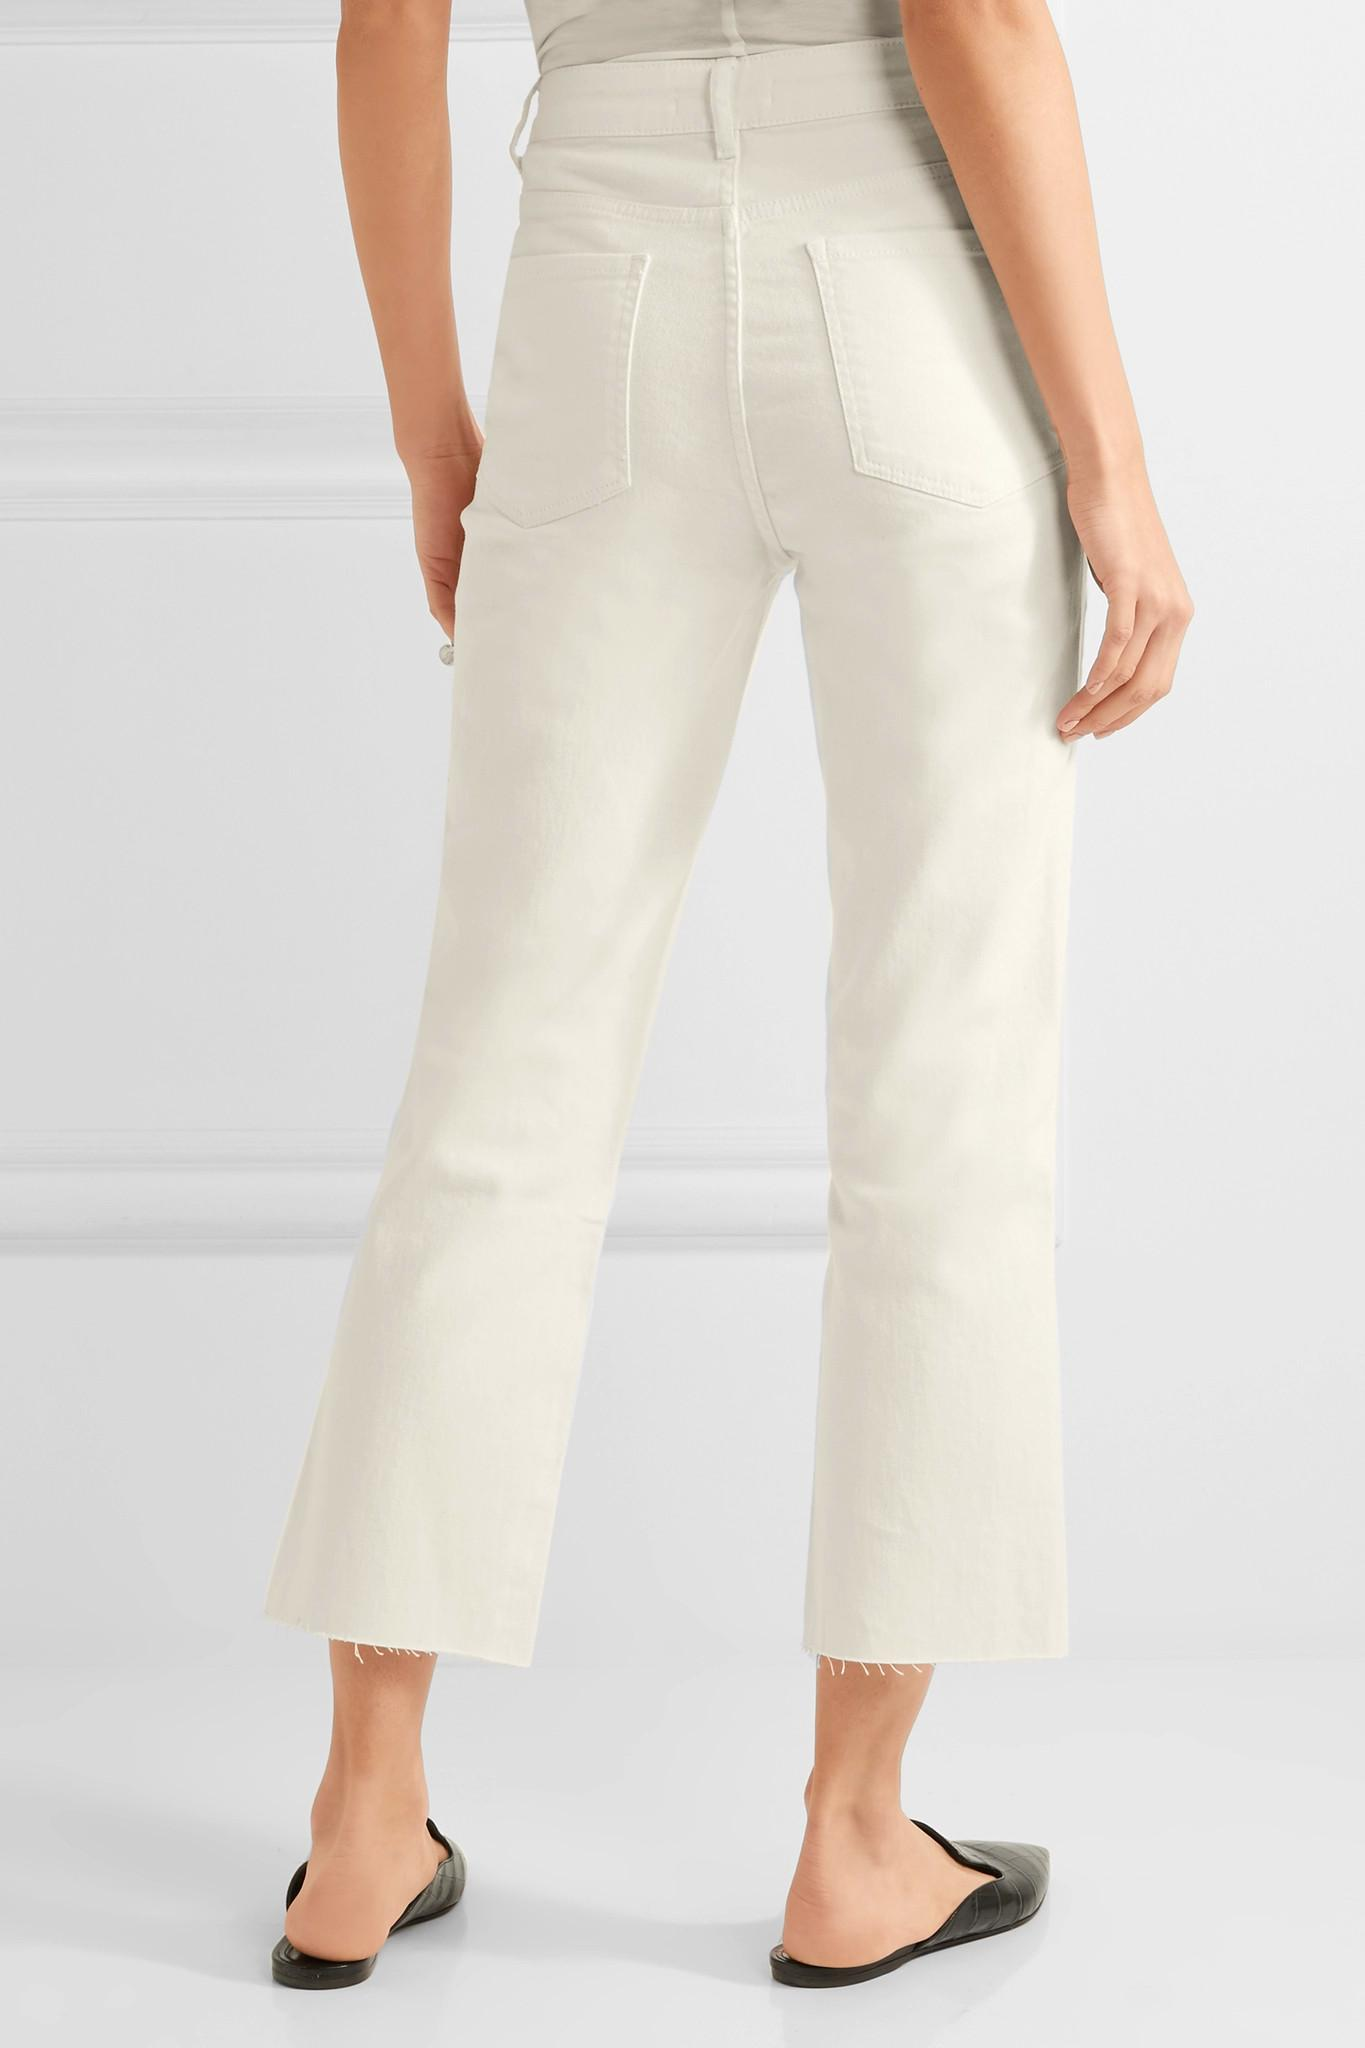 Cropped High-rise Straight-leg Jeans - White Barbara Casasola lEmzq5OsC